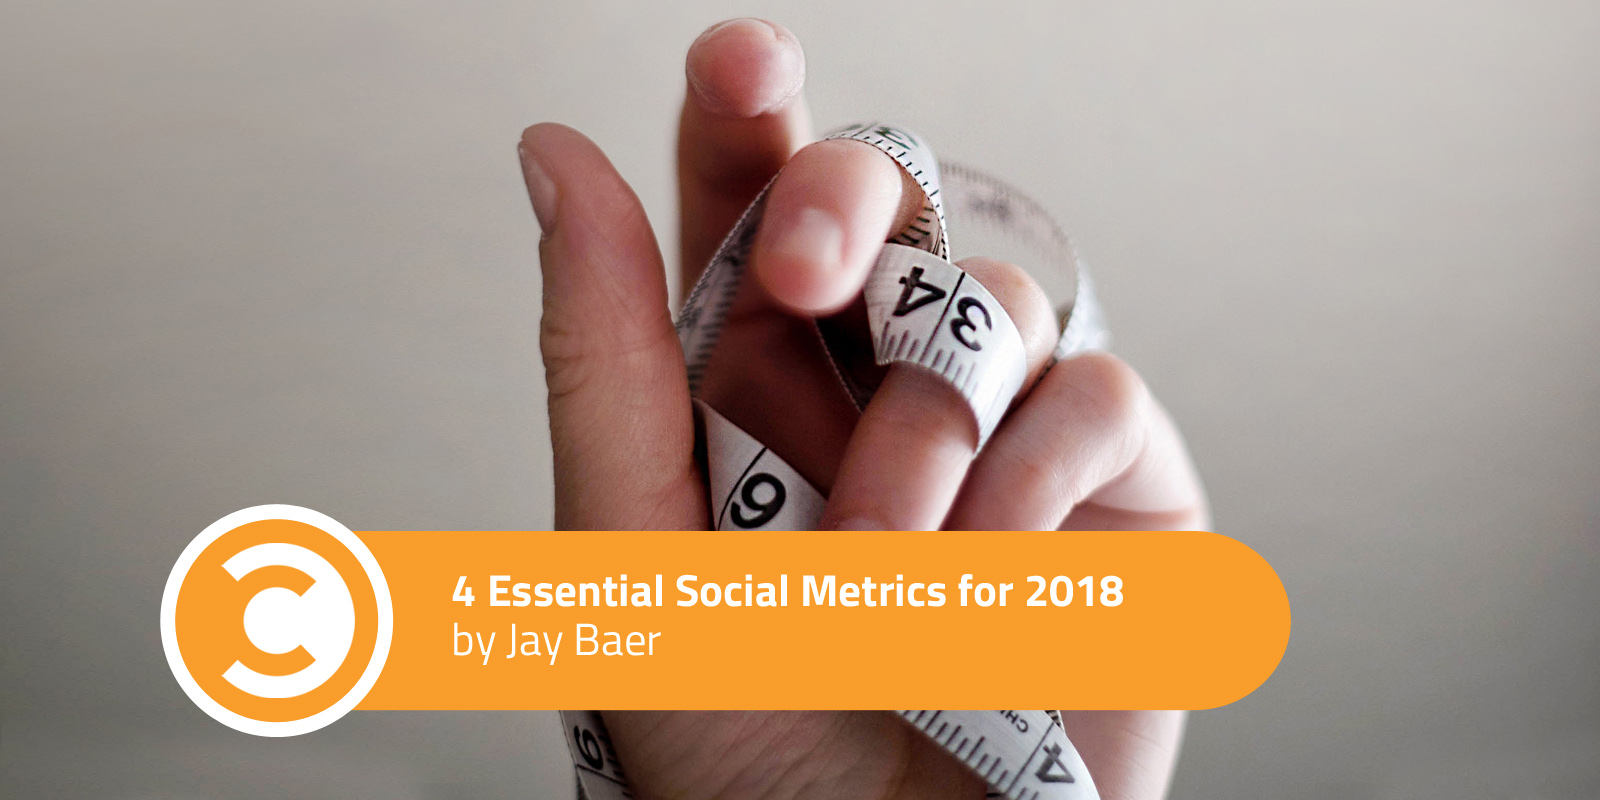 4 Essential Social Metrics for 2018